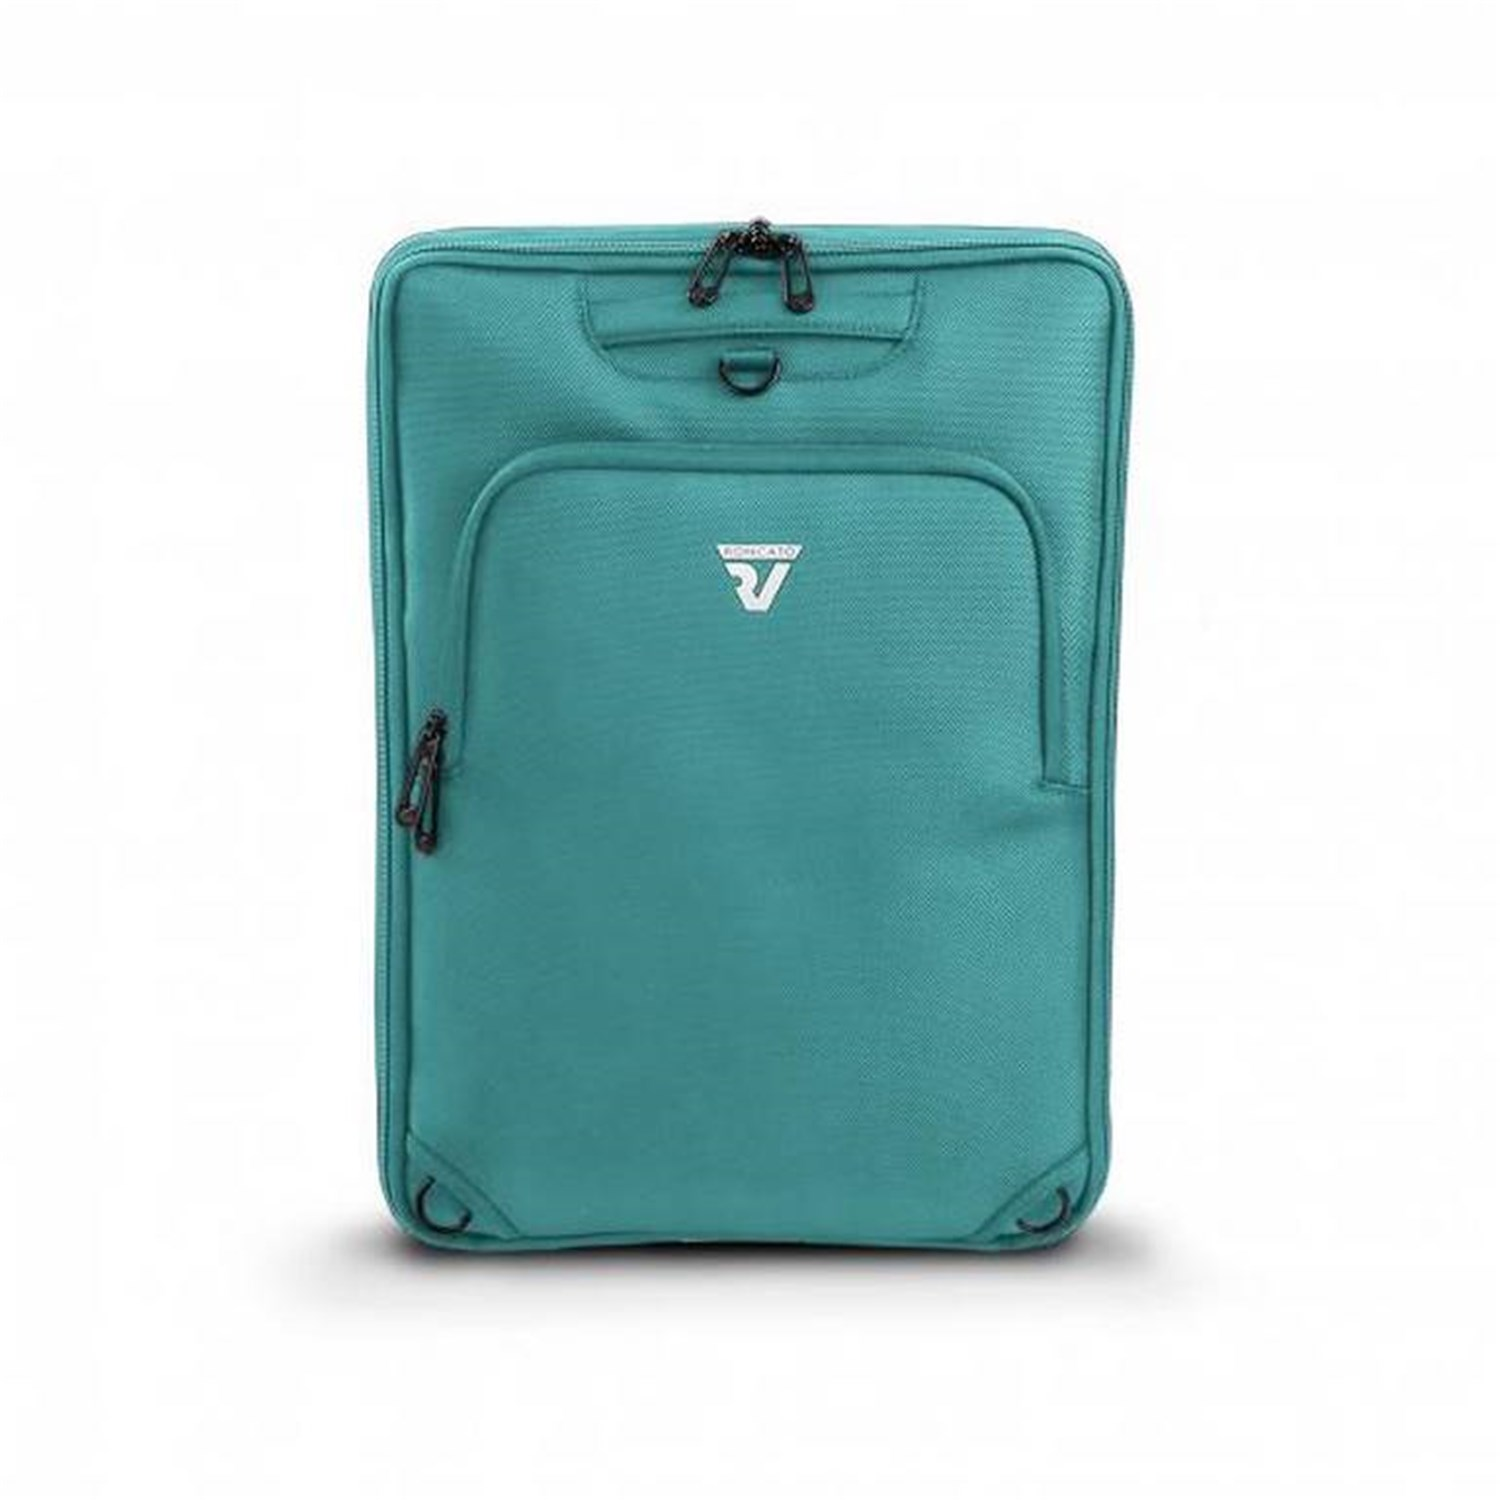 Roncato Bags Accessories Backpacks TURQUOISE 955400